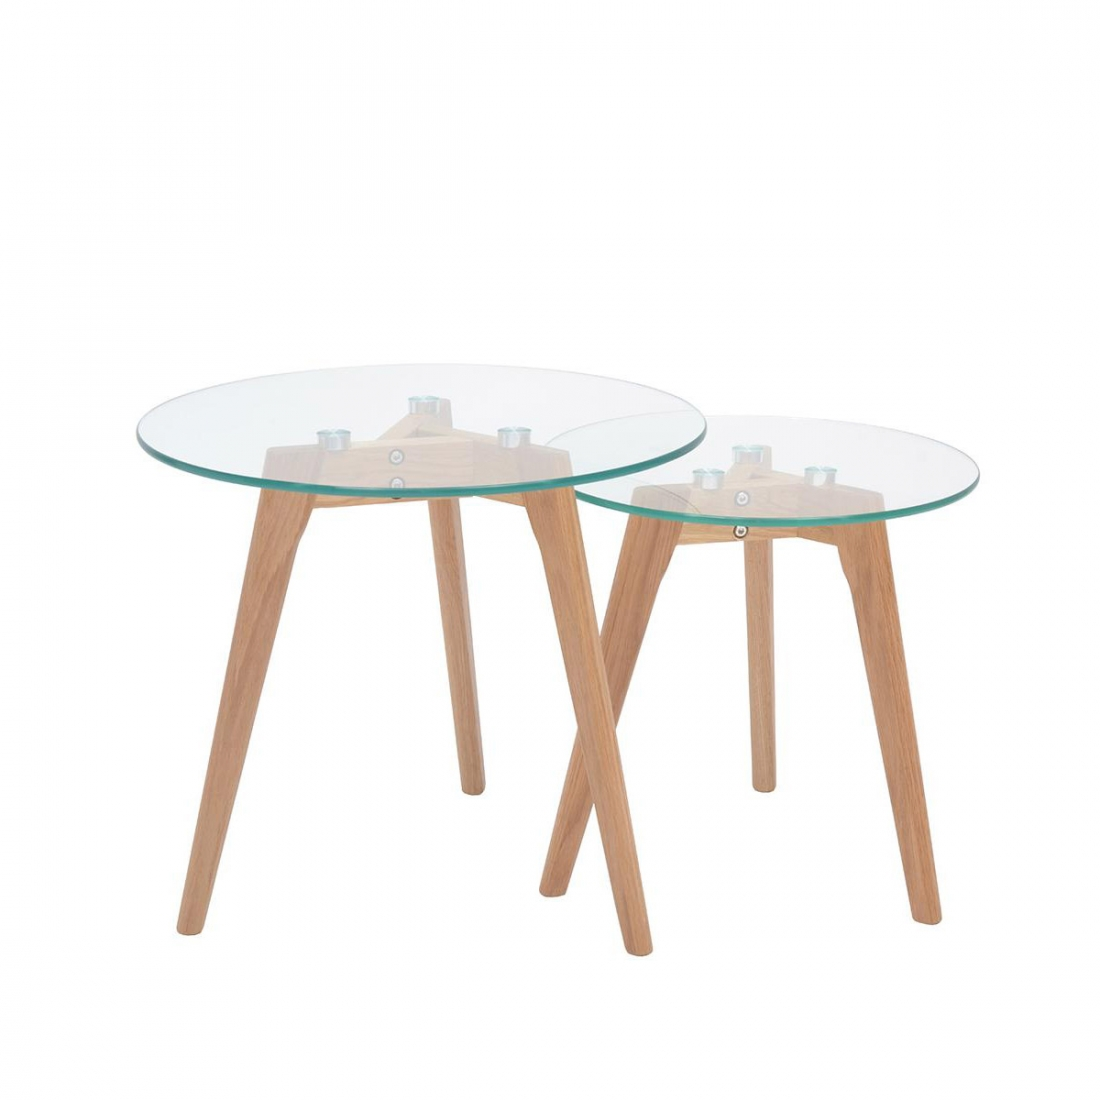 Table basse verre design avec plateau en verre zendart - Table d appoint contemporaine ...